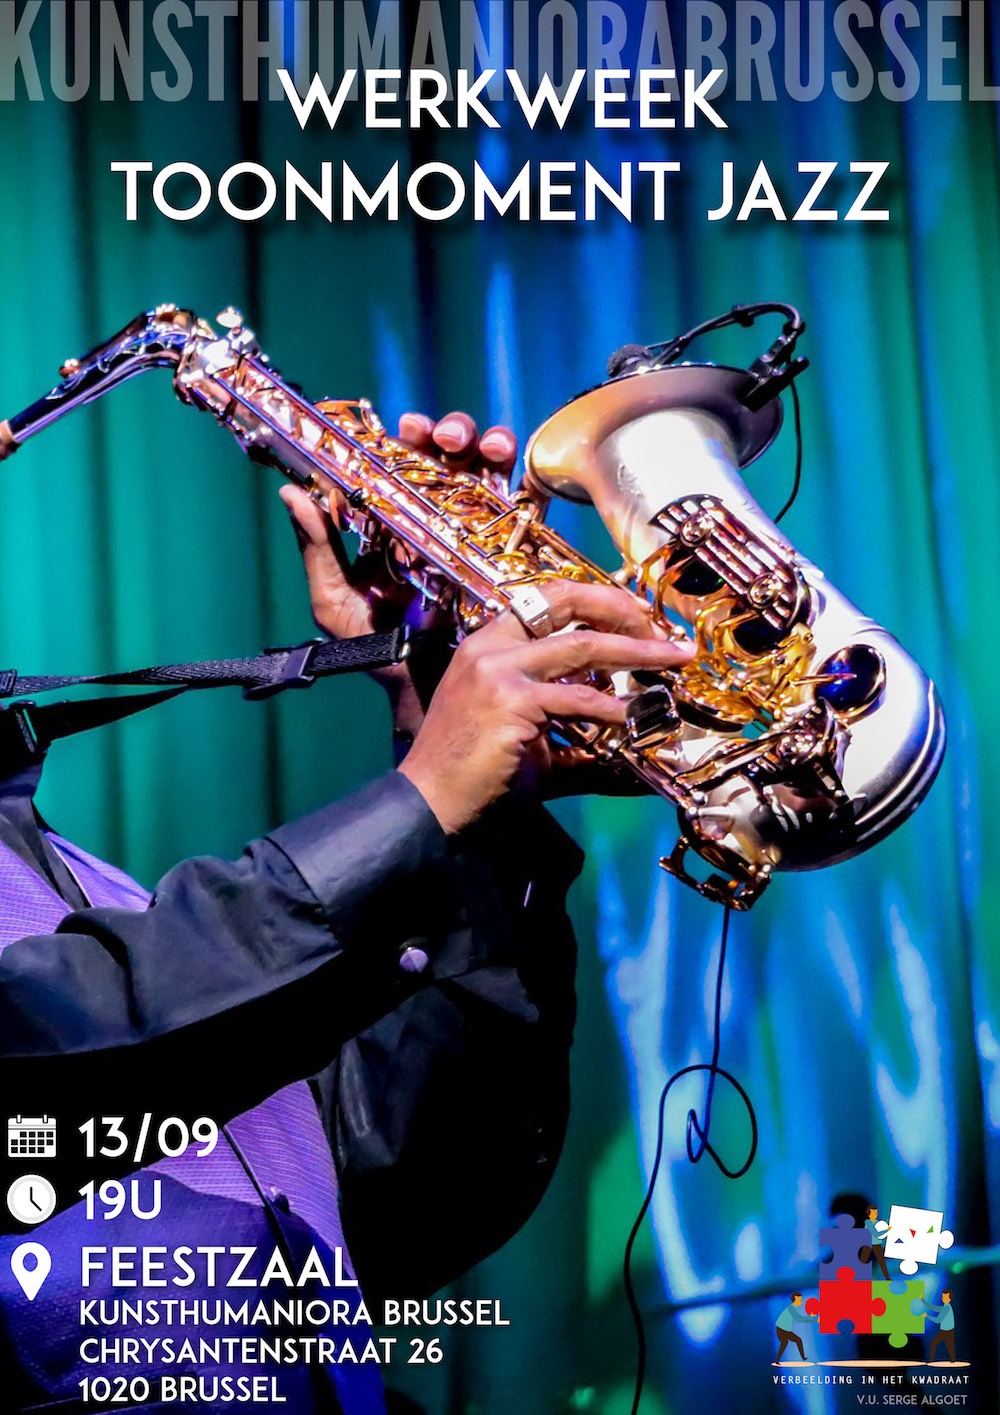 Werkweek en toonmoment Jazz - 13 september 2018